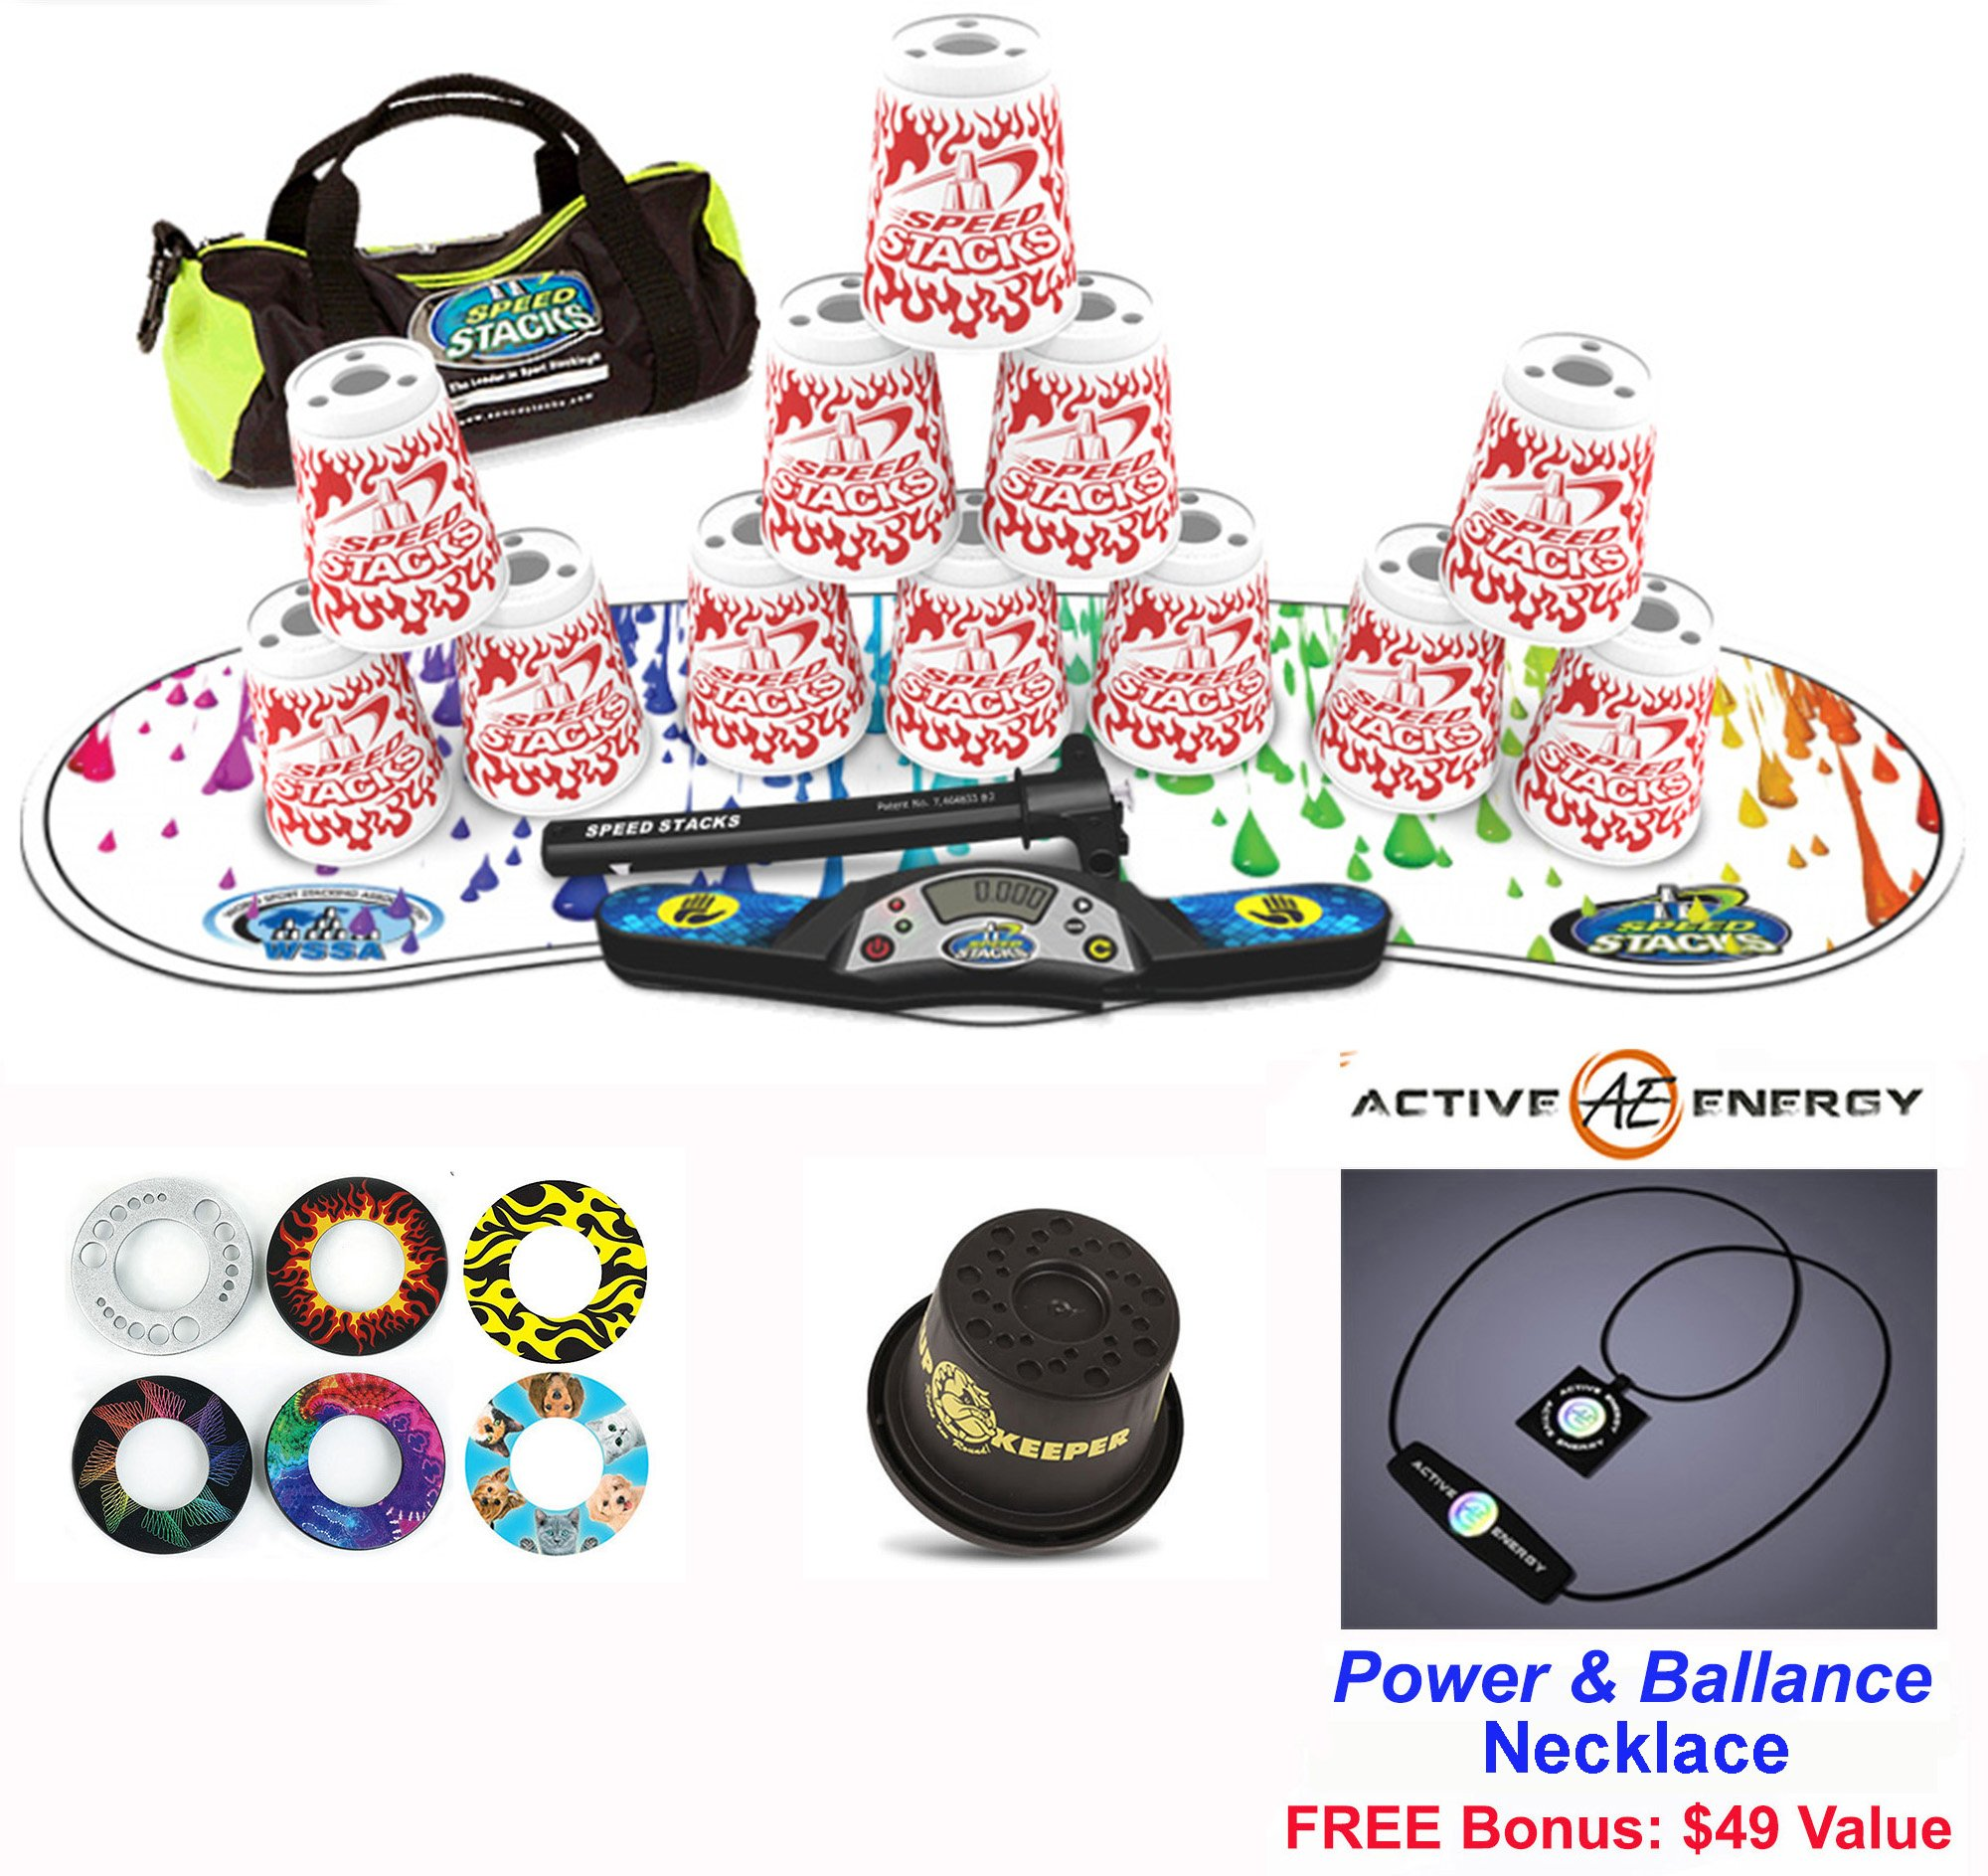 Speed Stacks Combo Set ''The Works'': 12 WHITE FLAME 4'' Cups, RAINBOW DROP Gen 3 Mat, G4 Pro Timer, Cup Keeper, Stem, Gear Bag + Active Energy Necklace